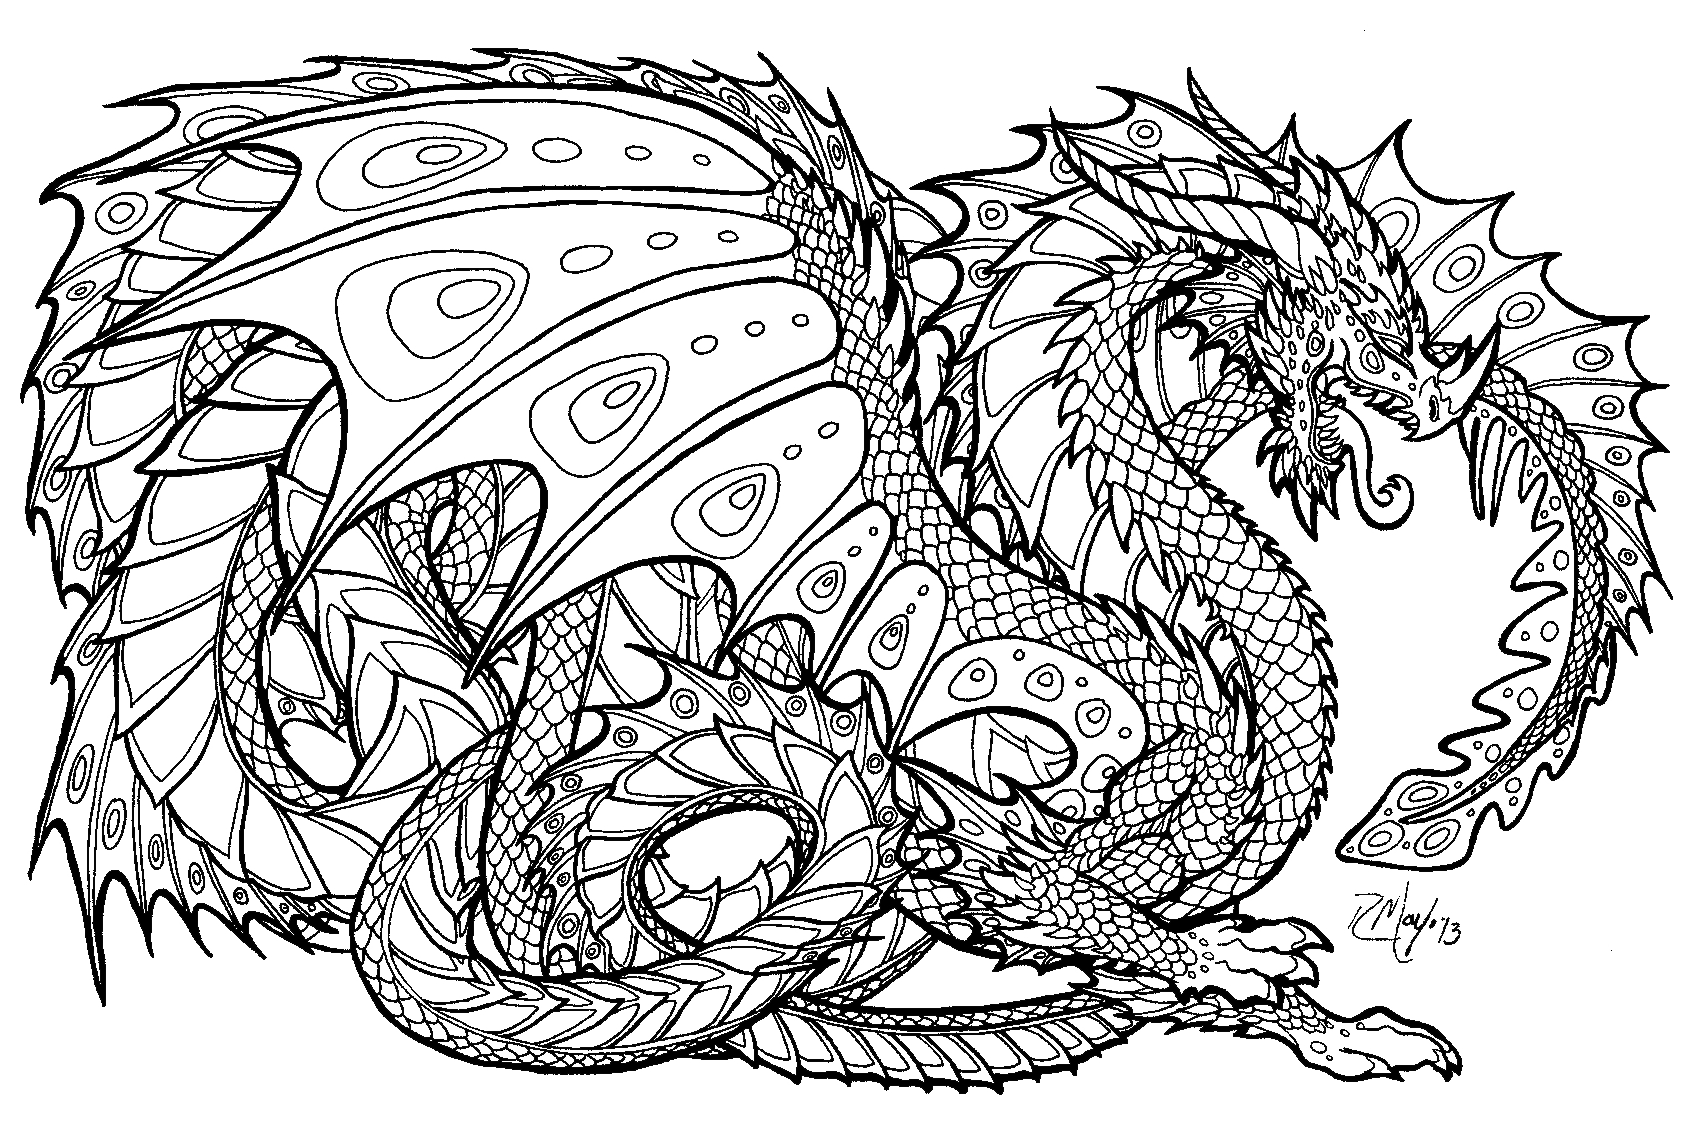 Detailed coloring pages to download